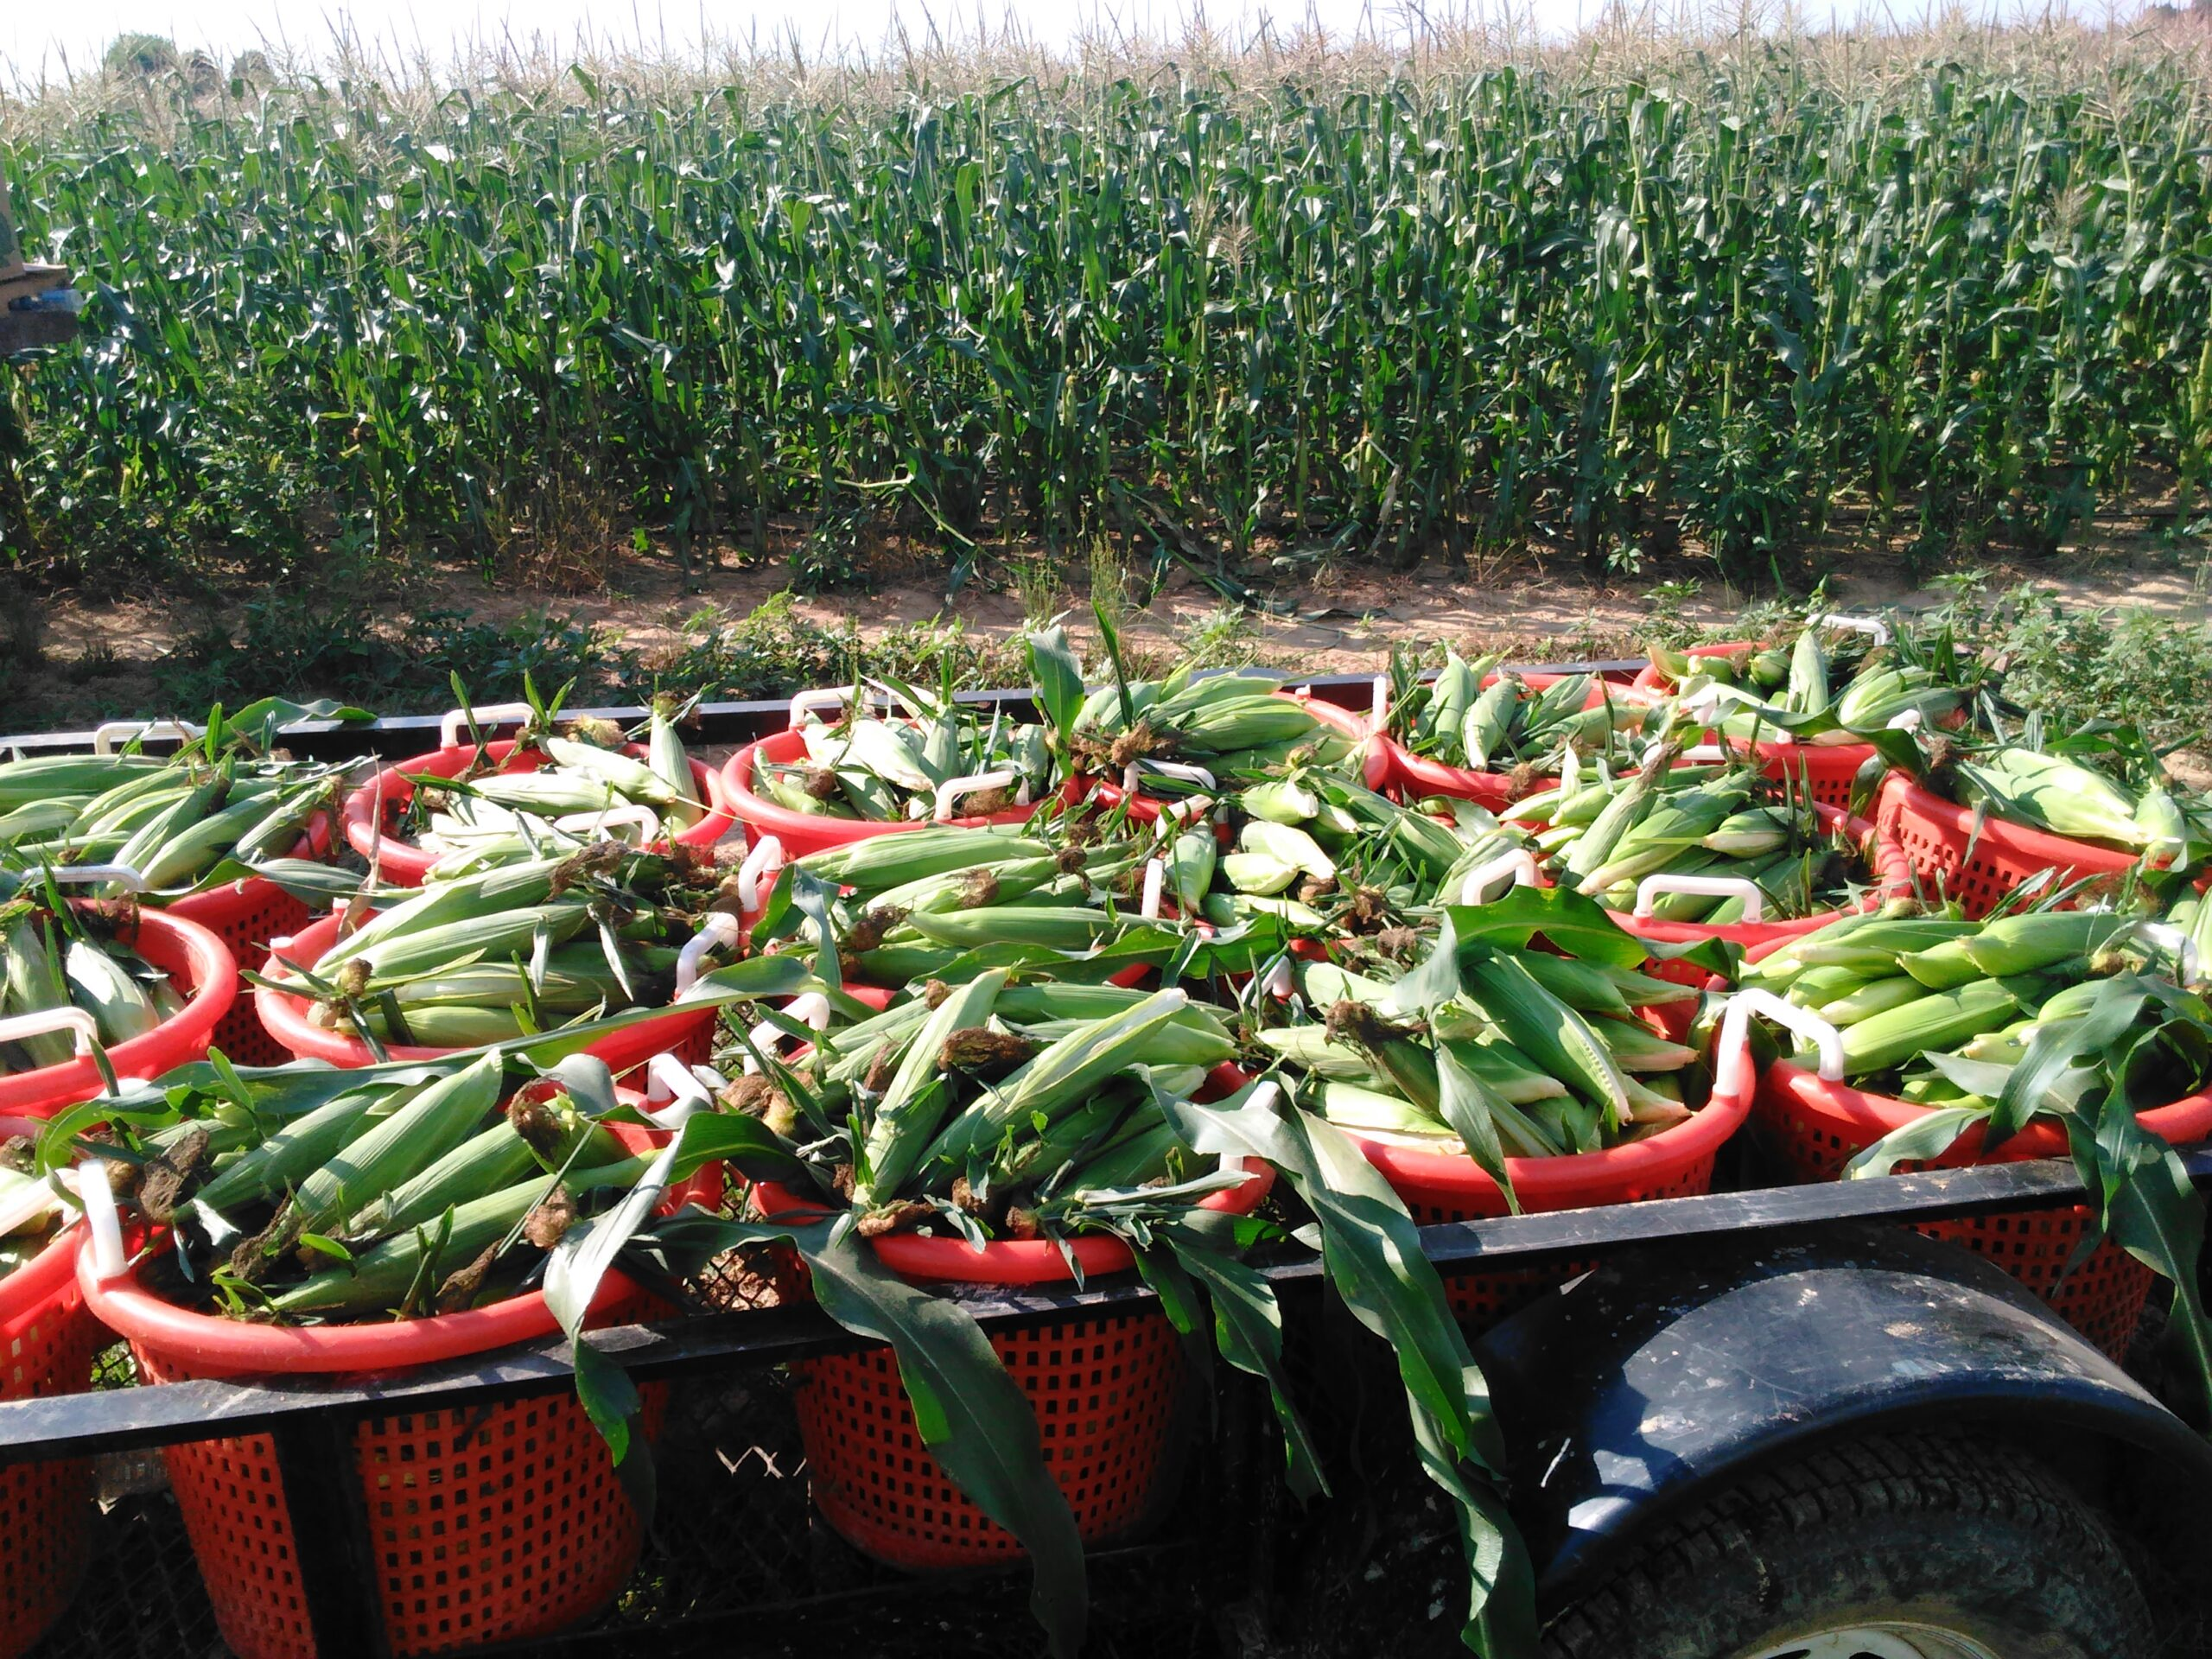 Rainy Friday at Miller Farms….Still lots of Fresh Sweet Corn, Pumpkins, Apples, and More!